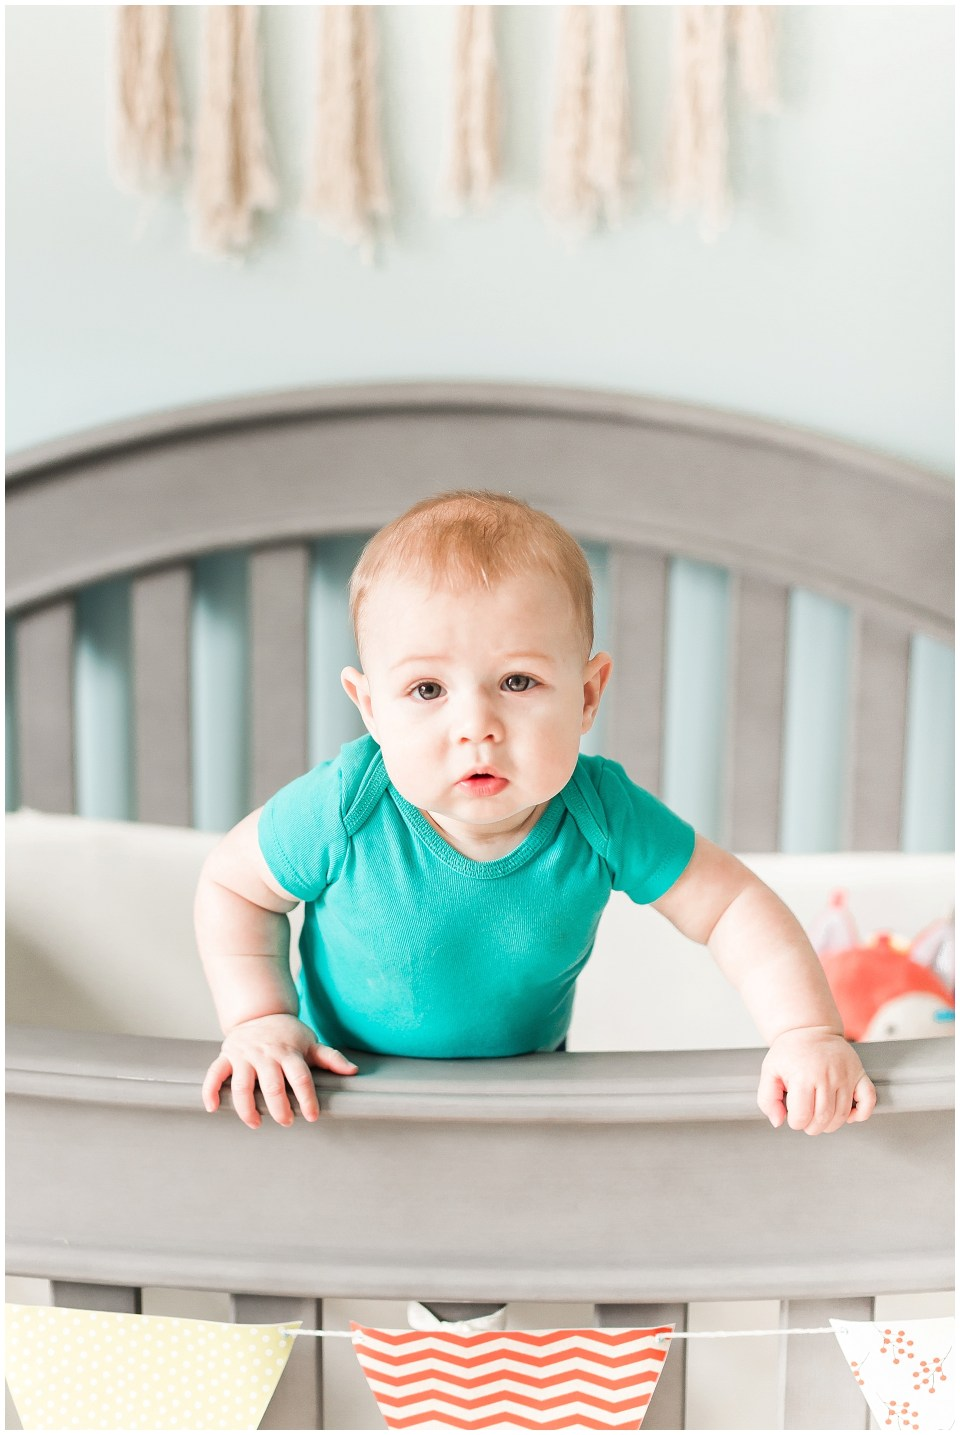 Baby Standing in Crib Photo